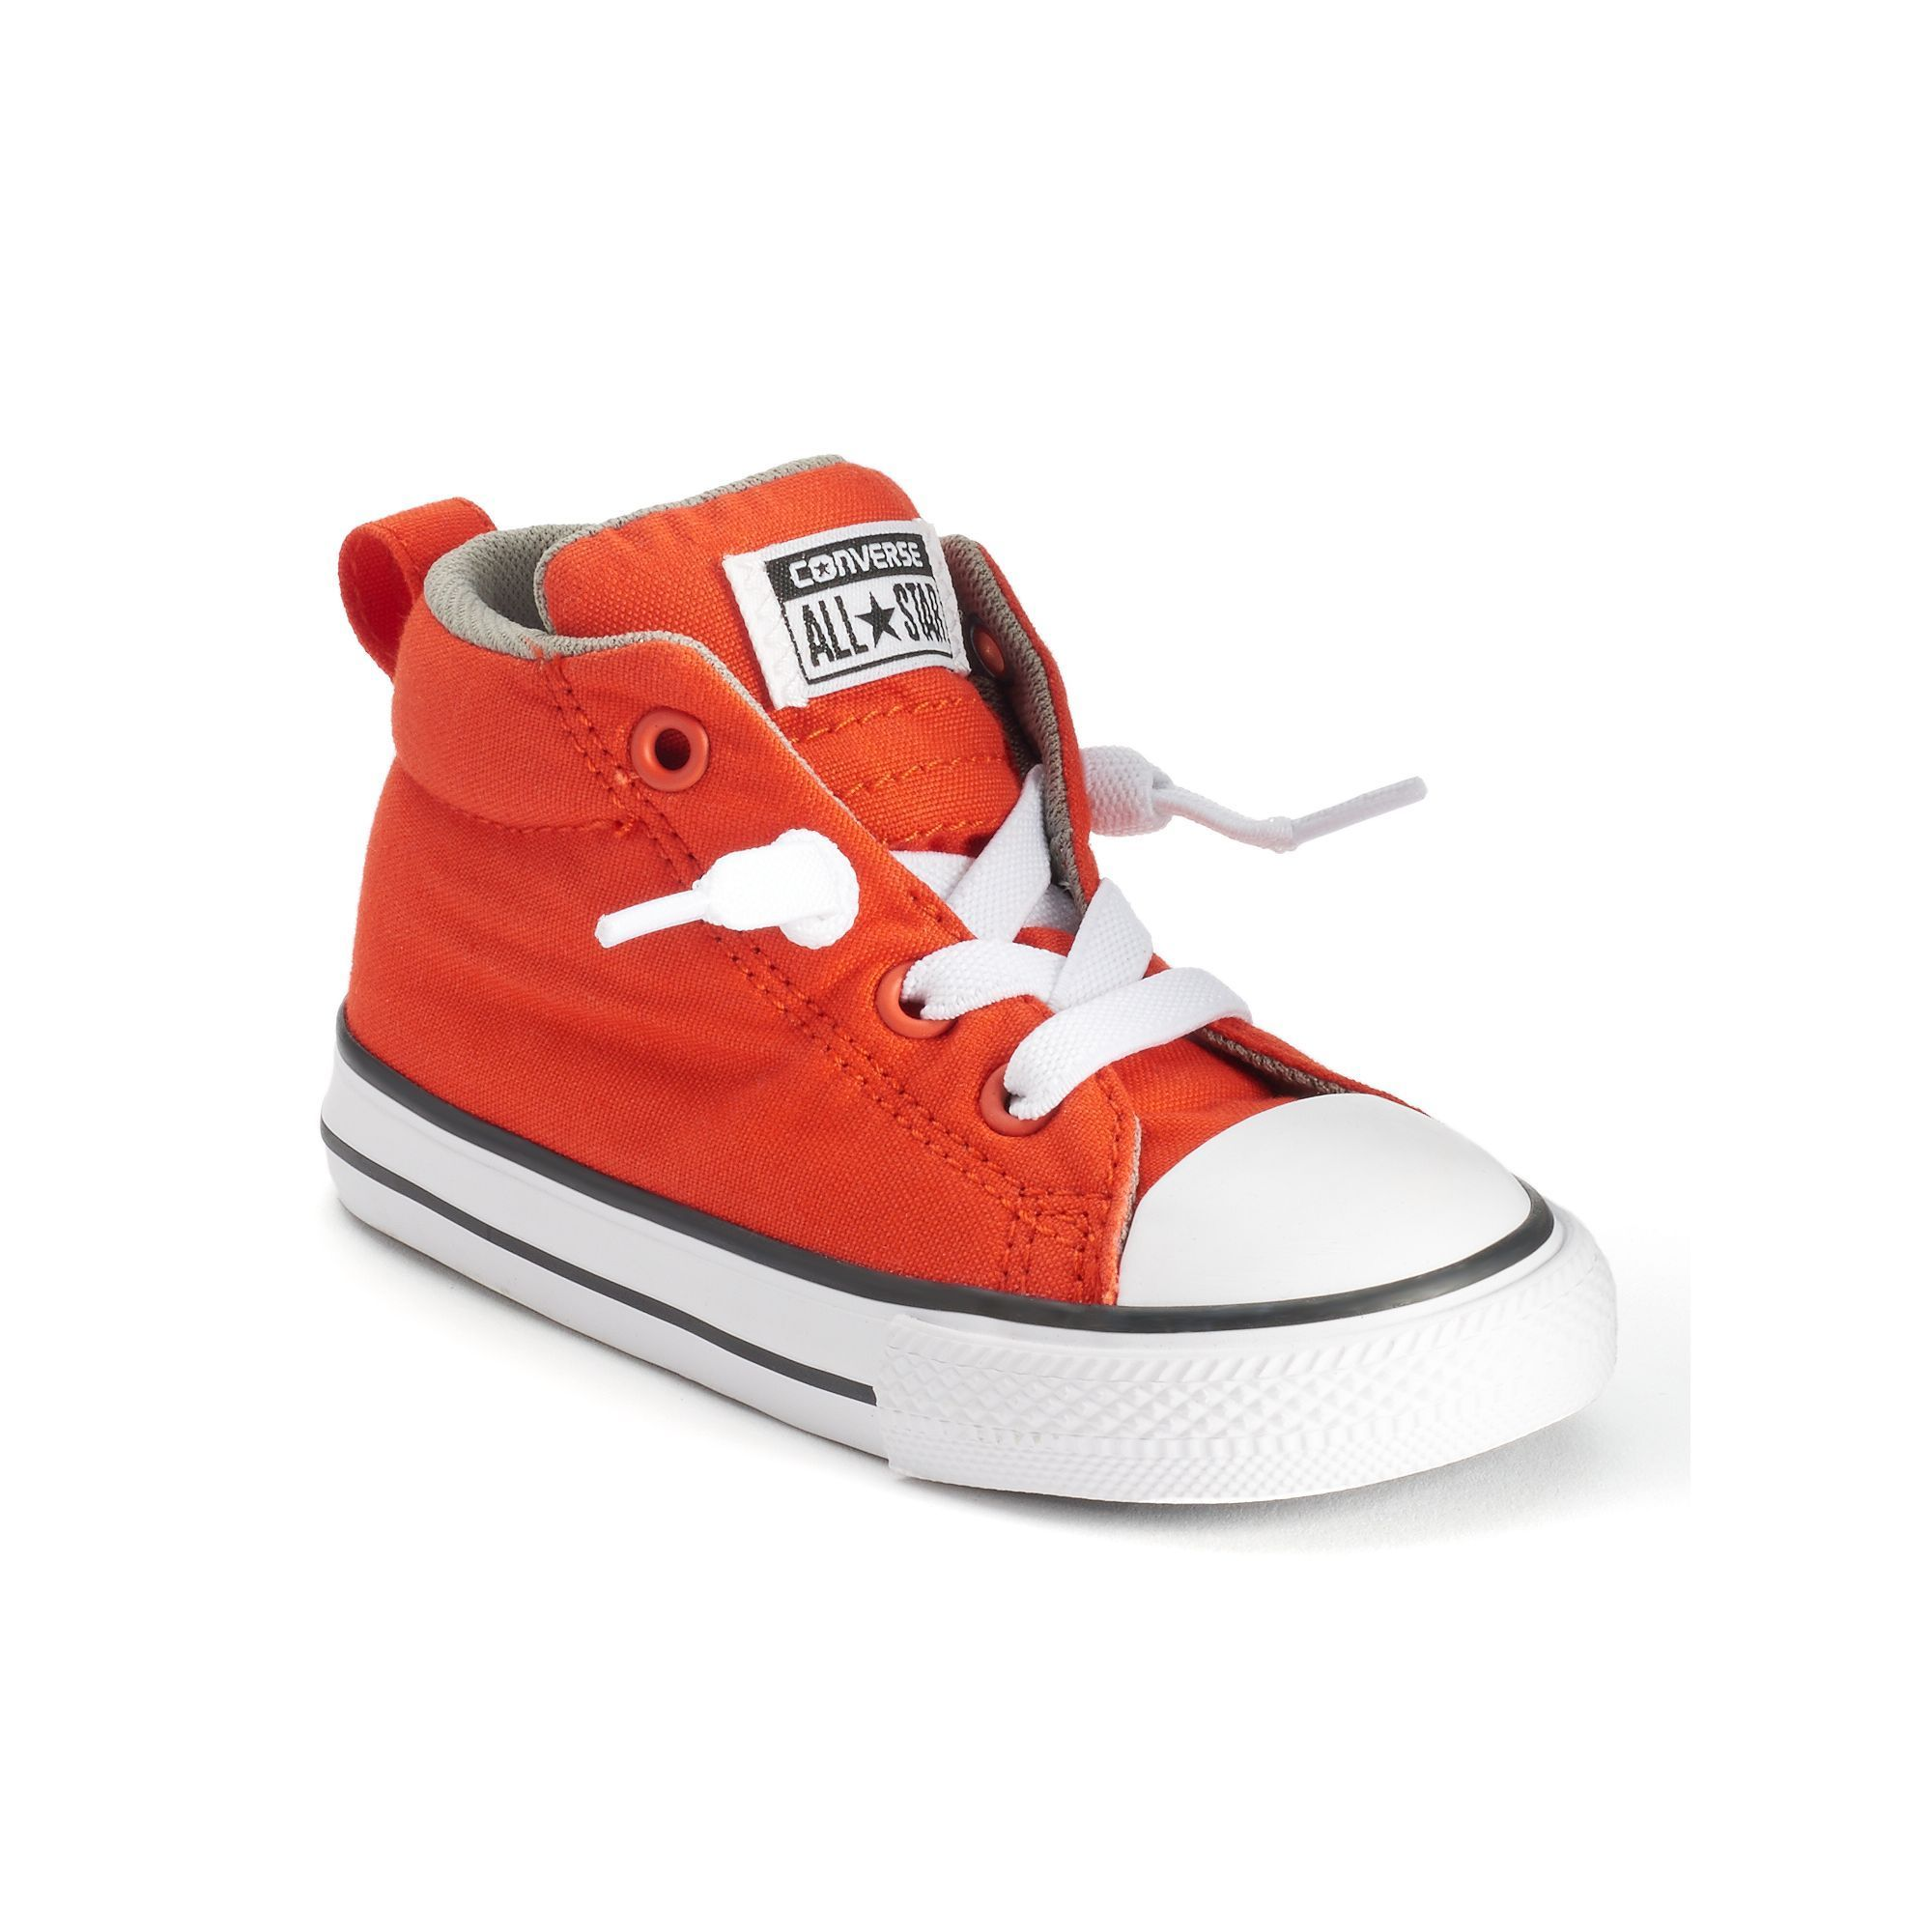 0f7464d2798df3 Baby   Toddler Converse Chuck Taylor All Star Street Mid Sneakers ...